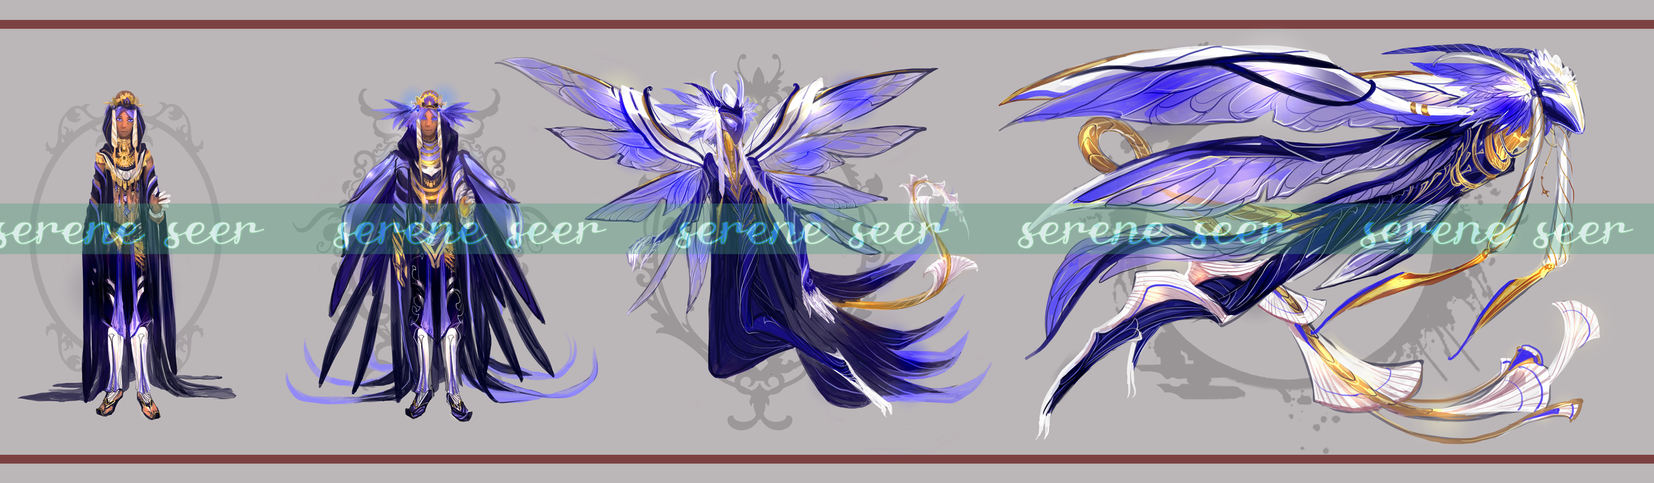 SERENE SEER adopt [CLOSED] by ensoul